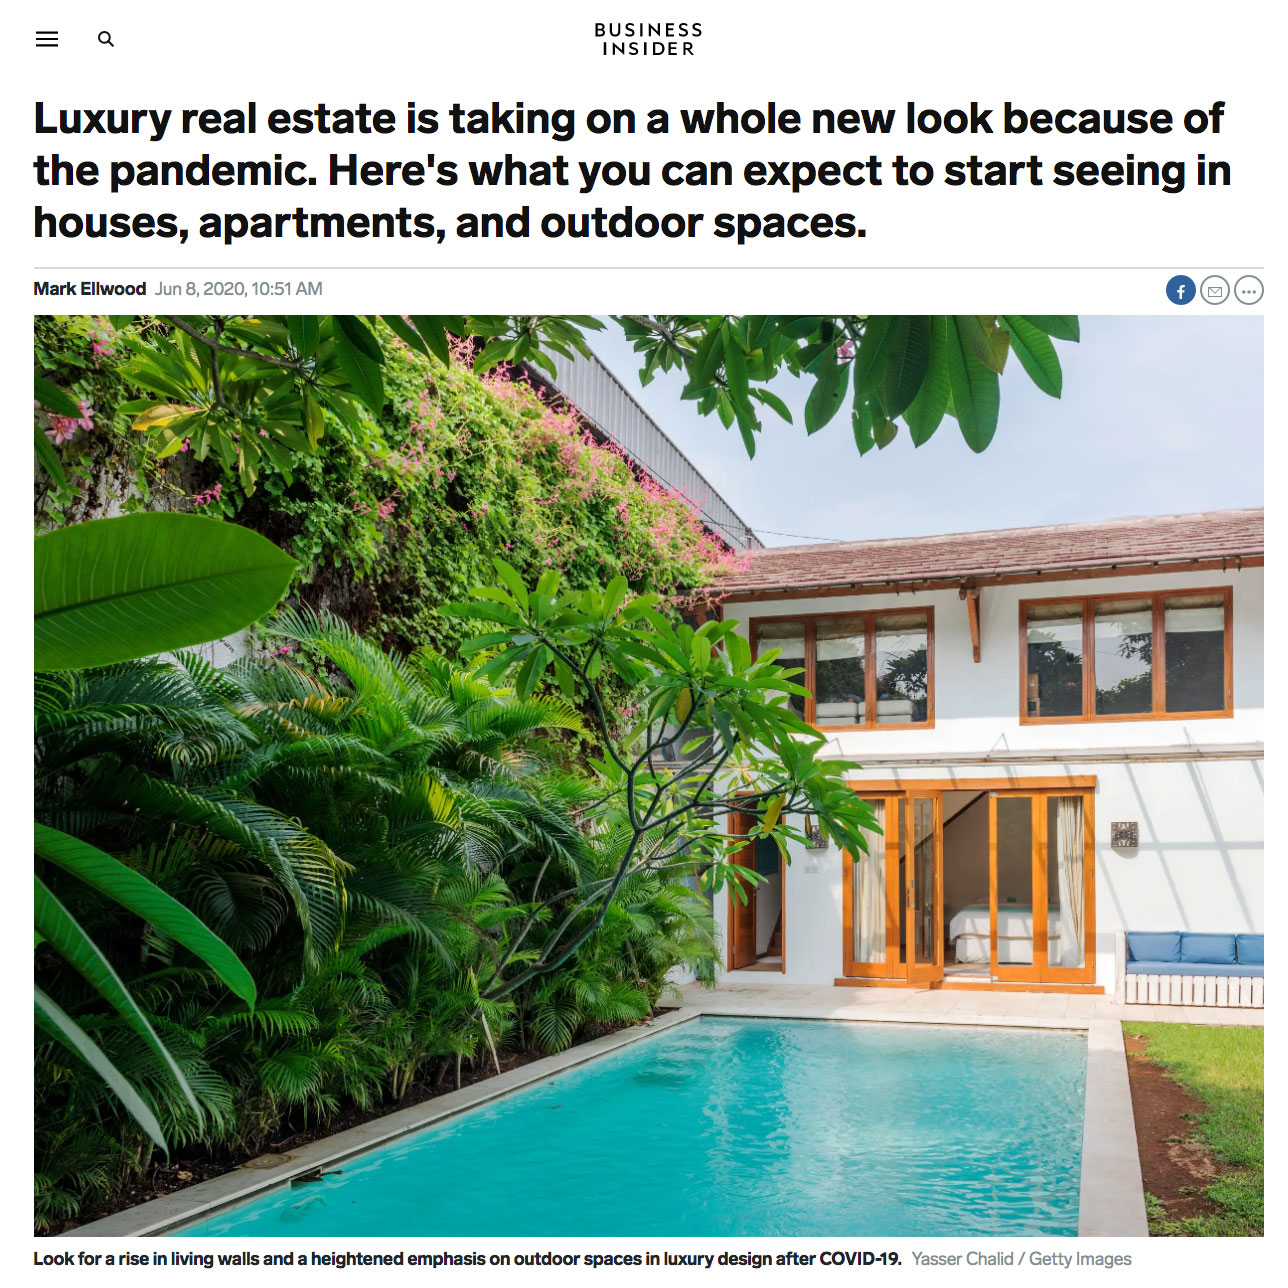 Adam Meshberg in Business Insider on Post Pandemic Changes in Luxury Interior Design and Architecture